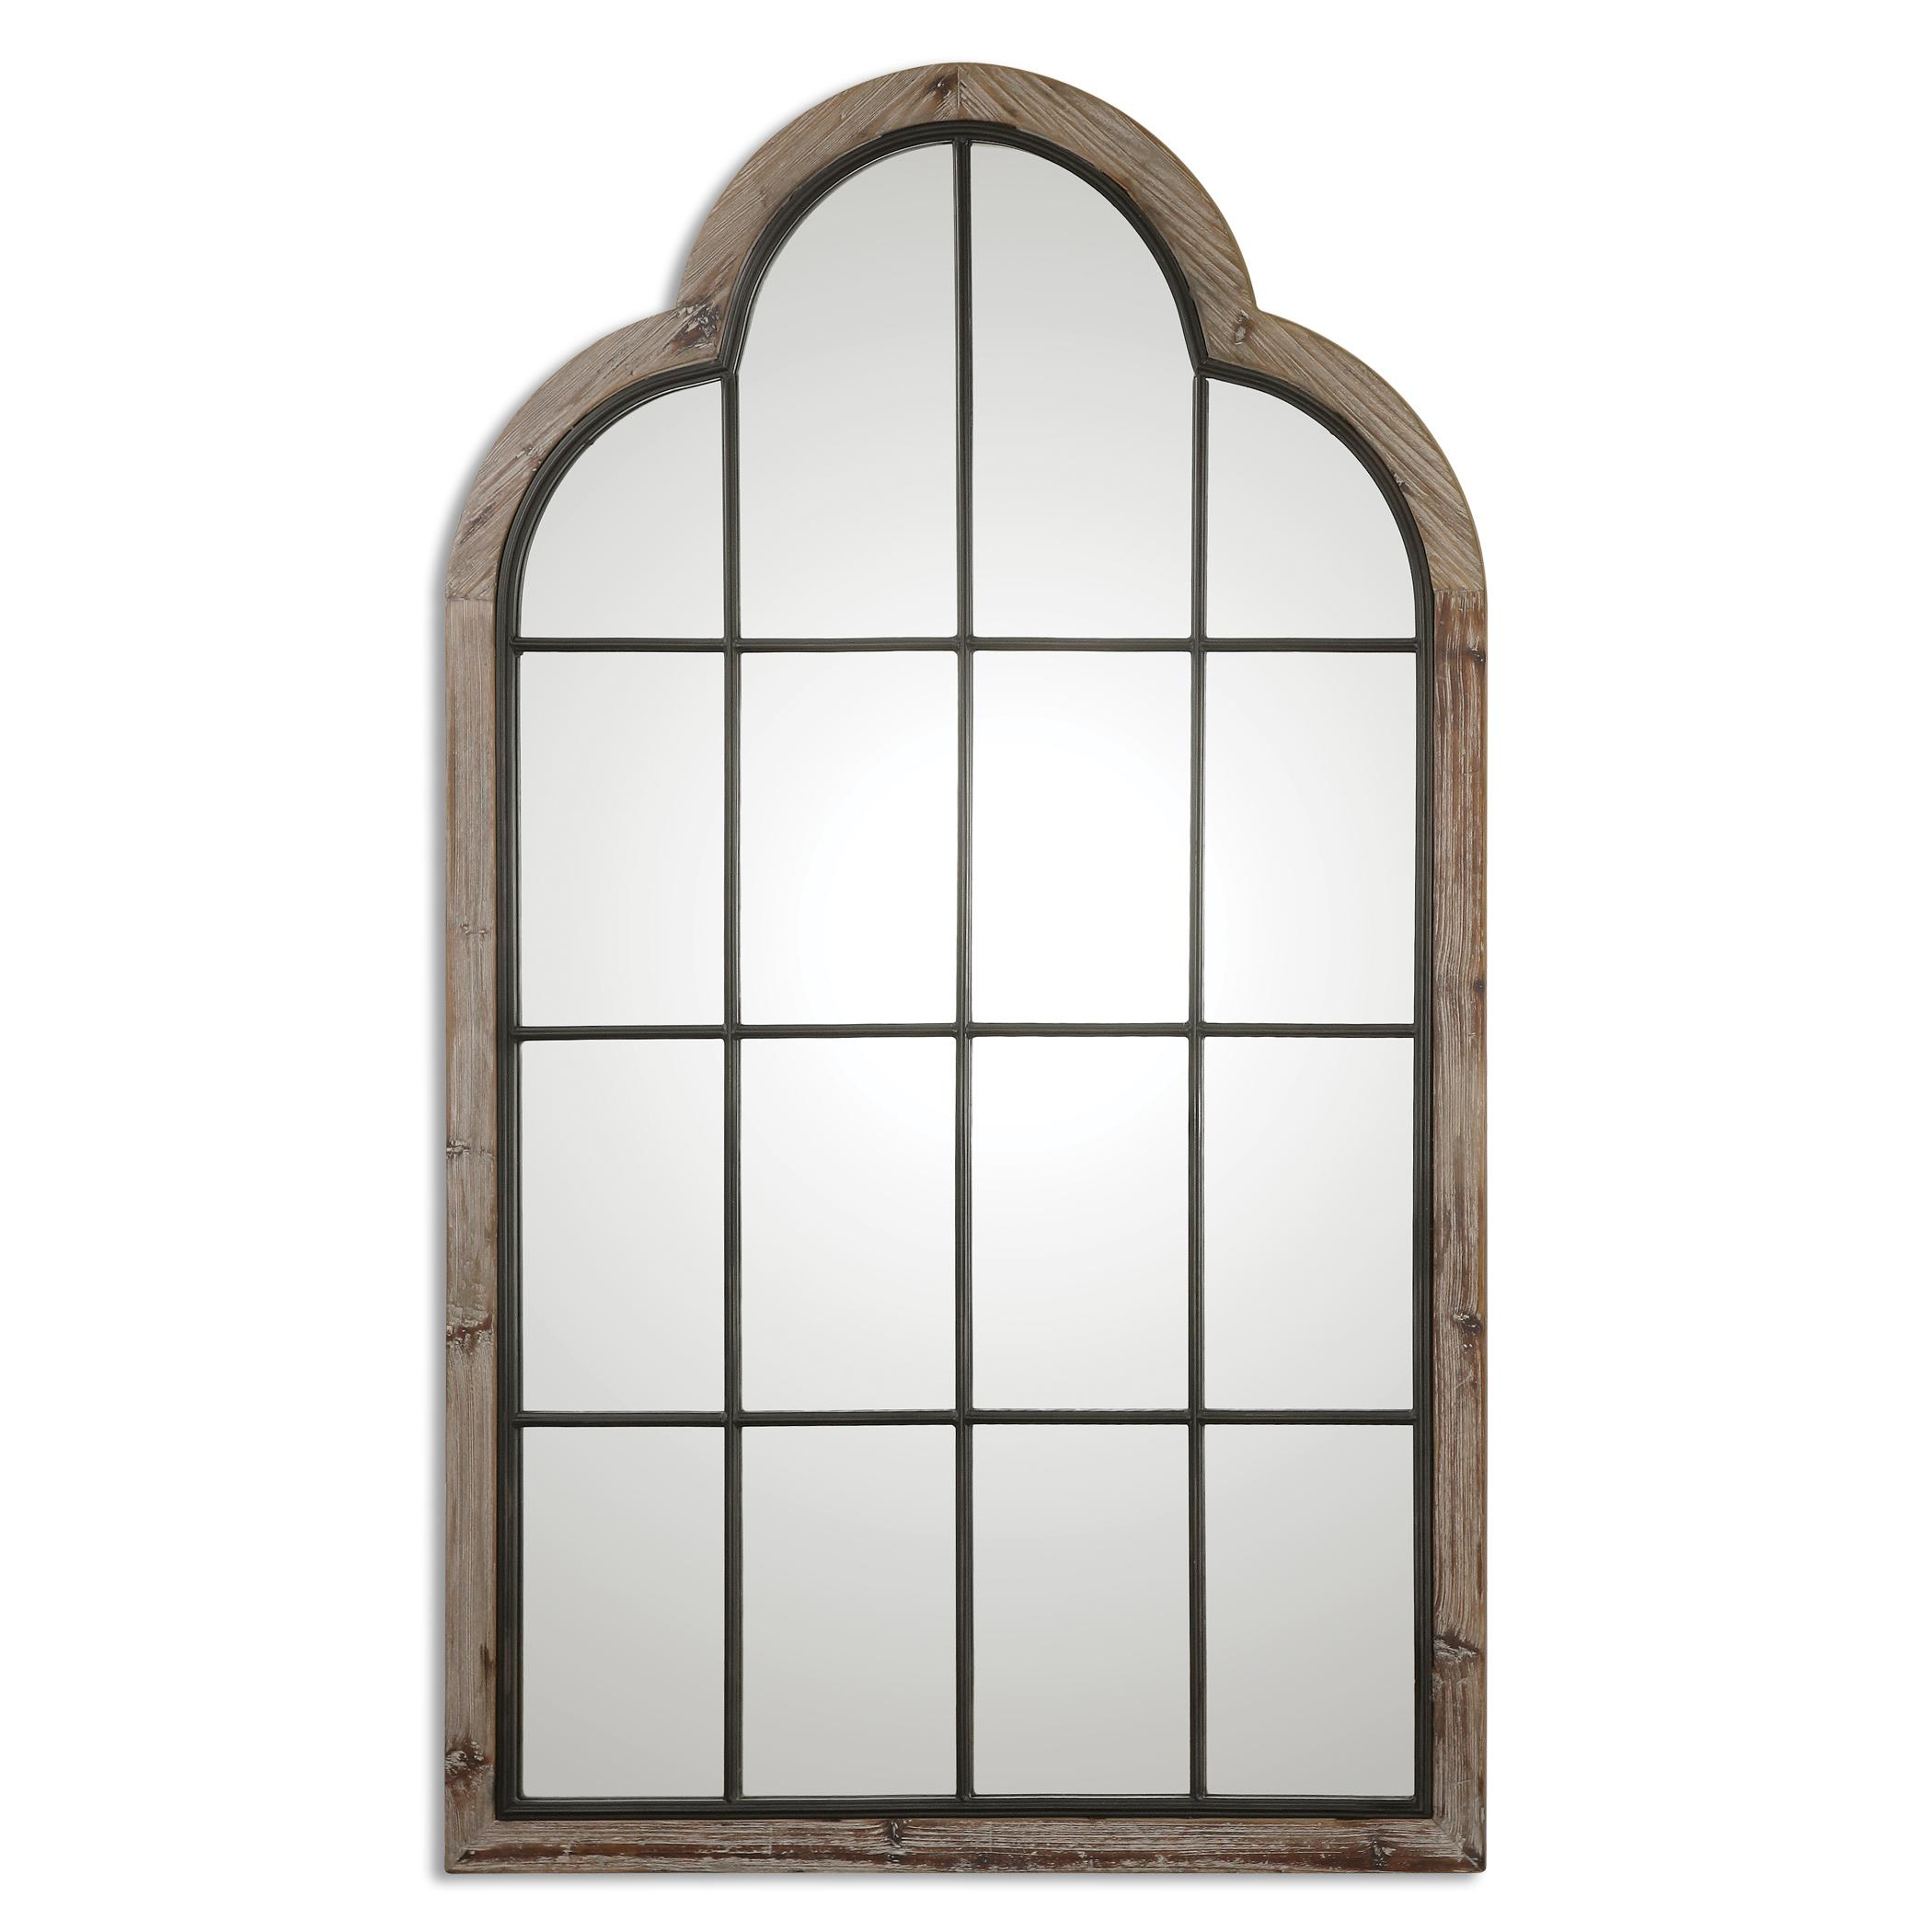 Uttermost Mirrors Gavorrano Oversized Arch Mirror - Item Number: 09524